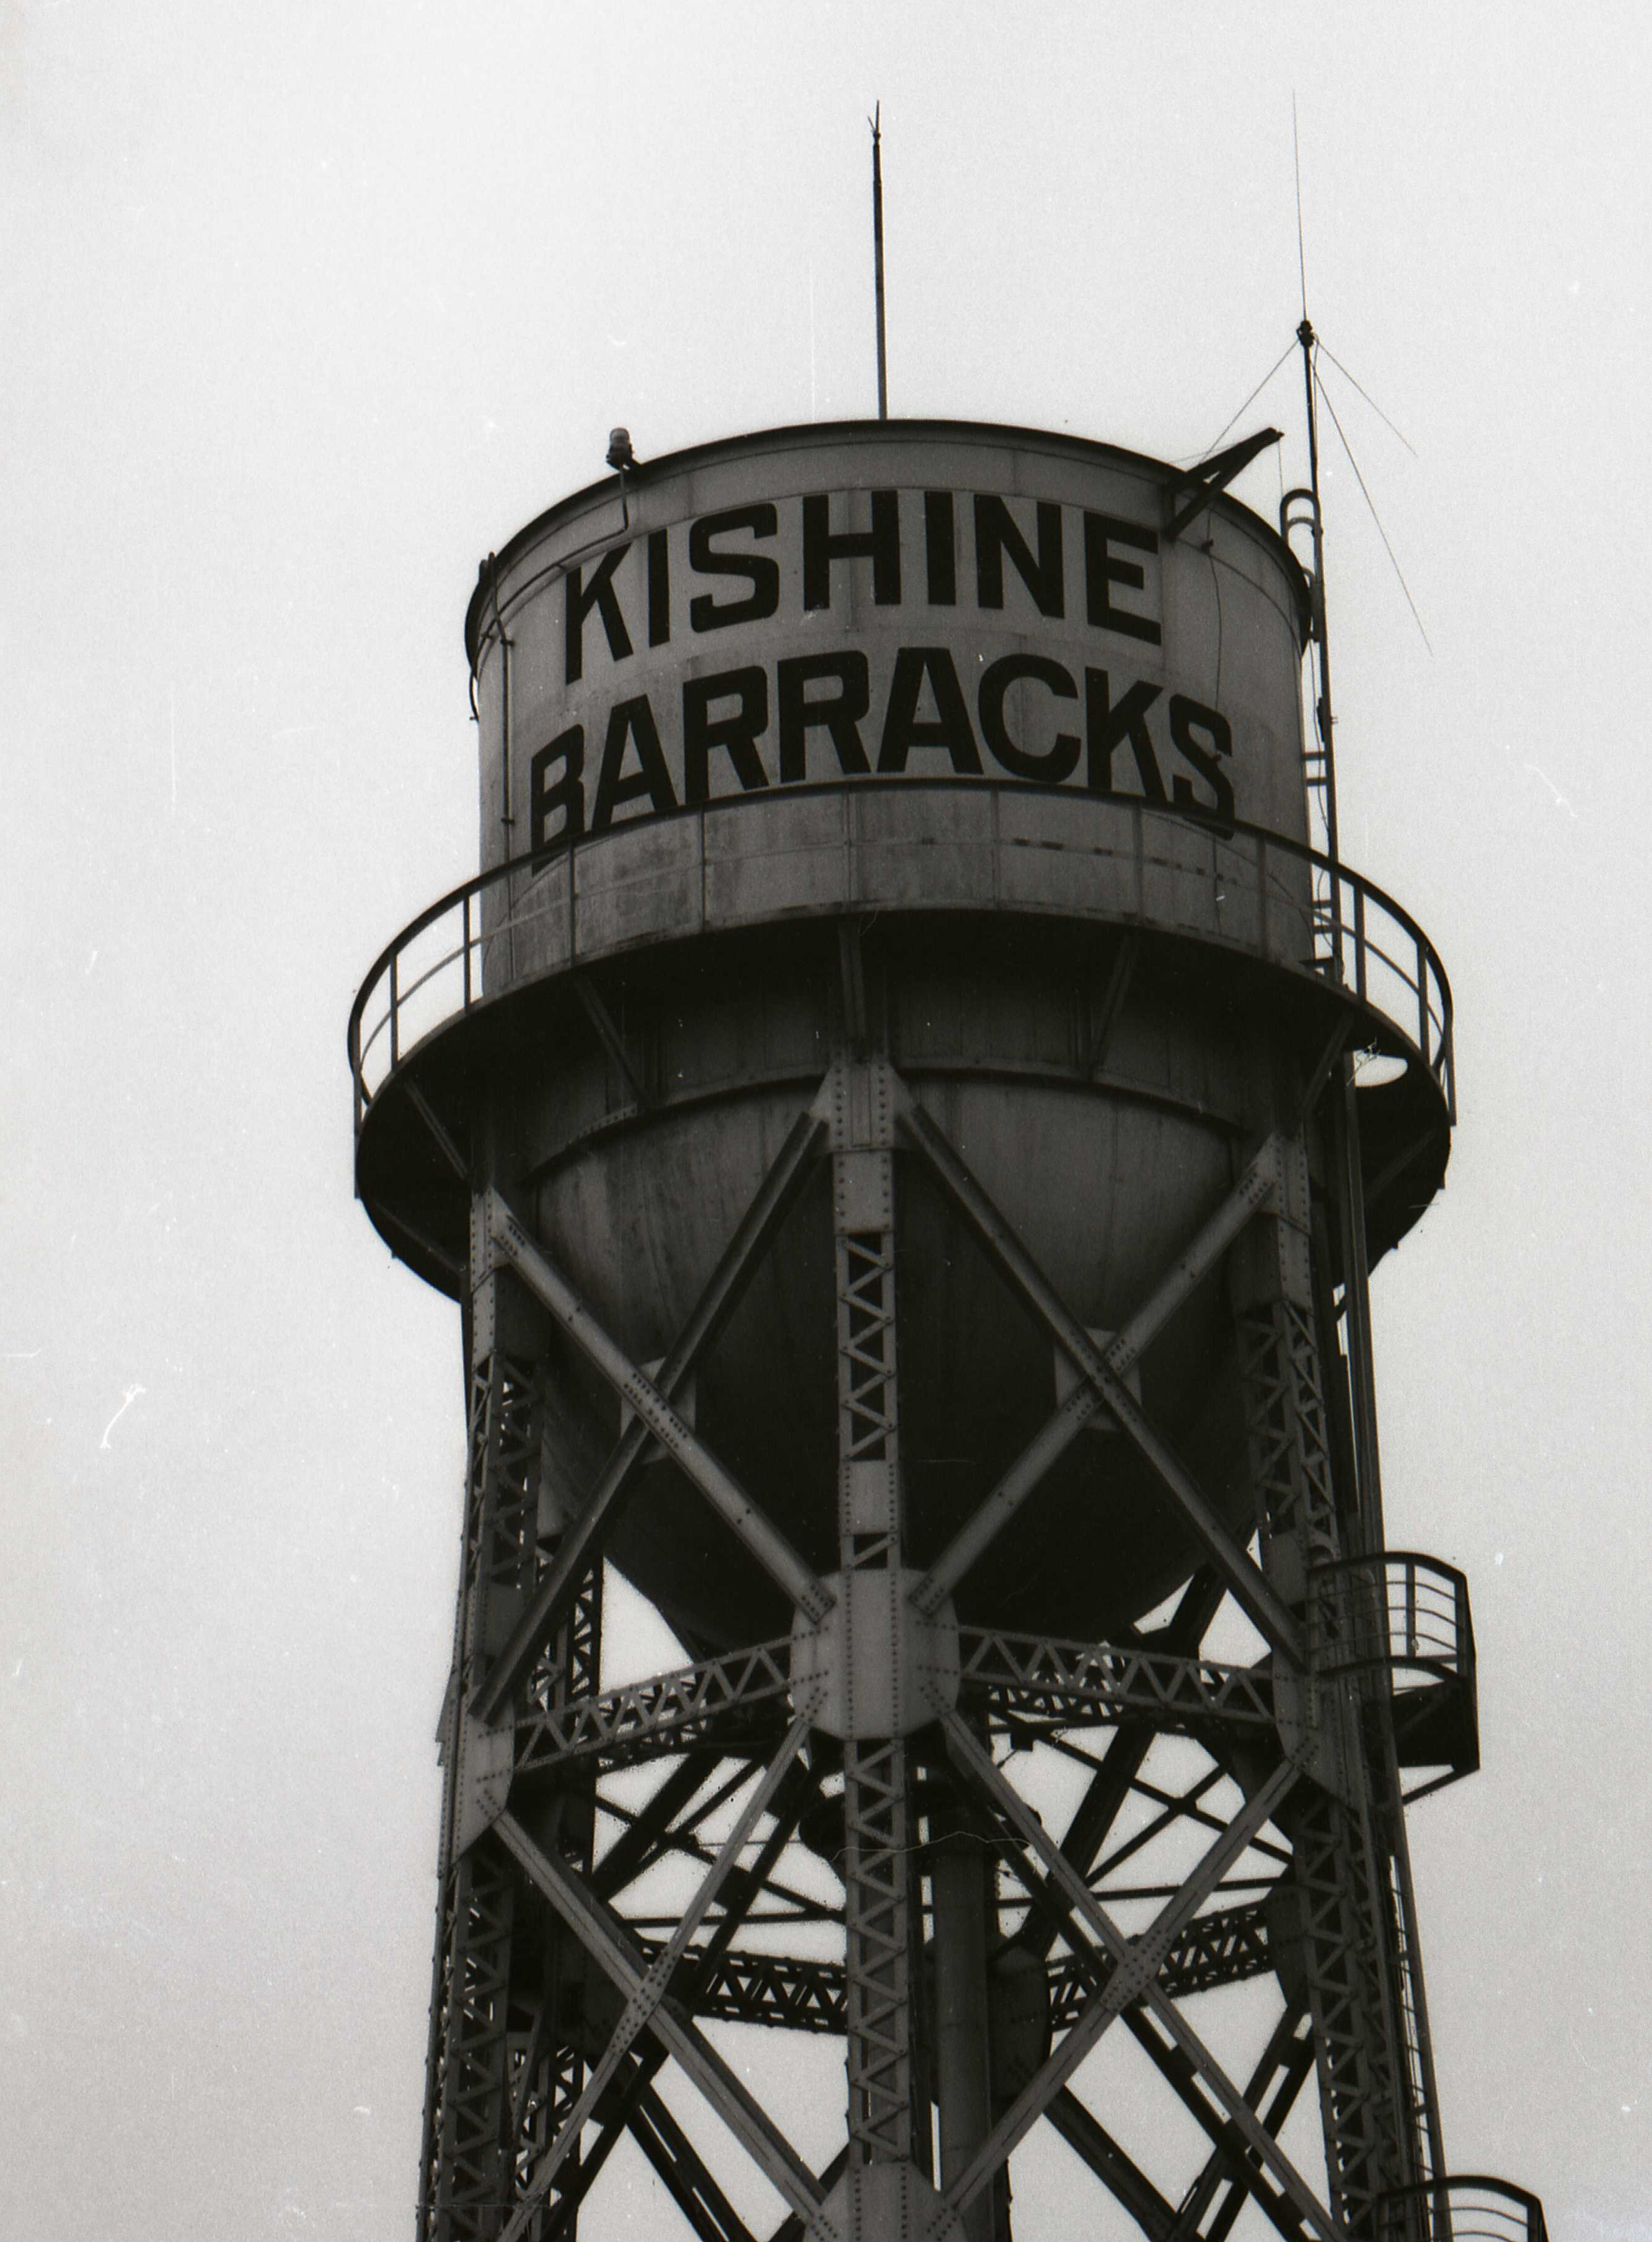 Kishine tower